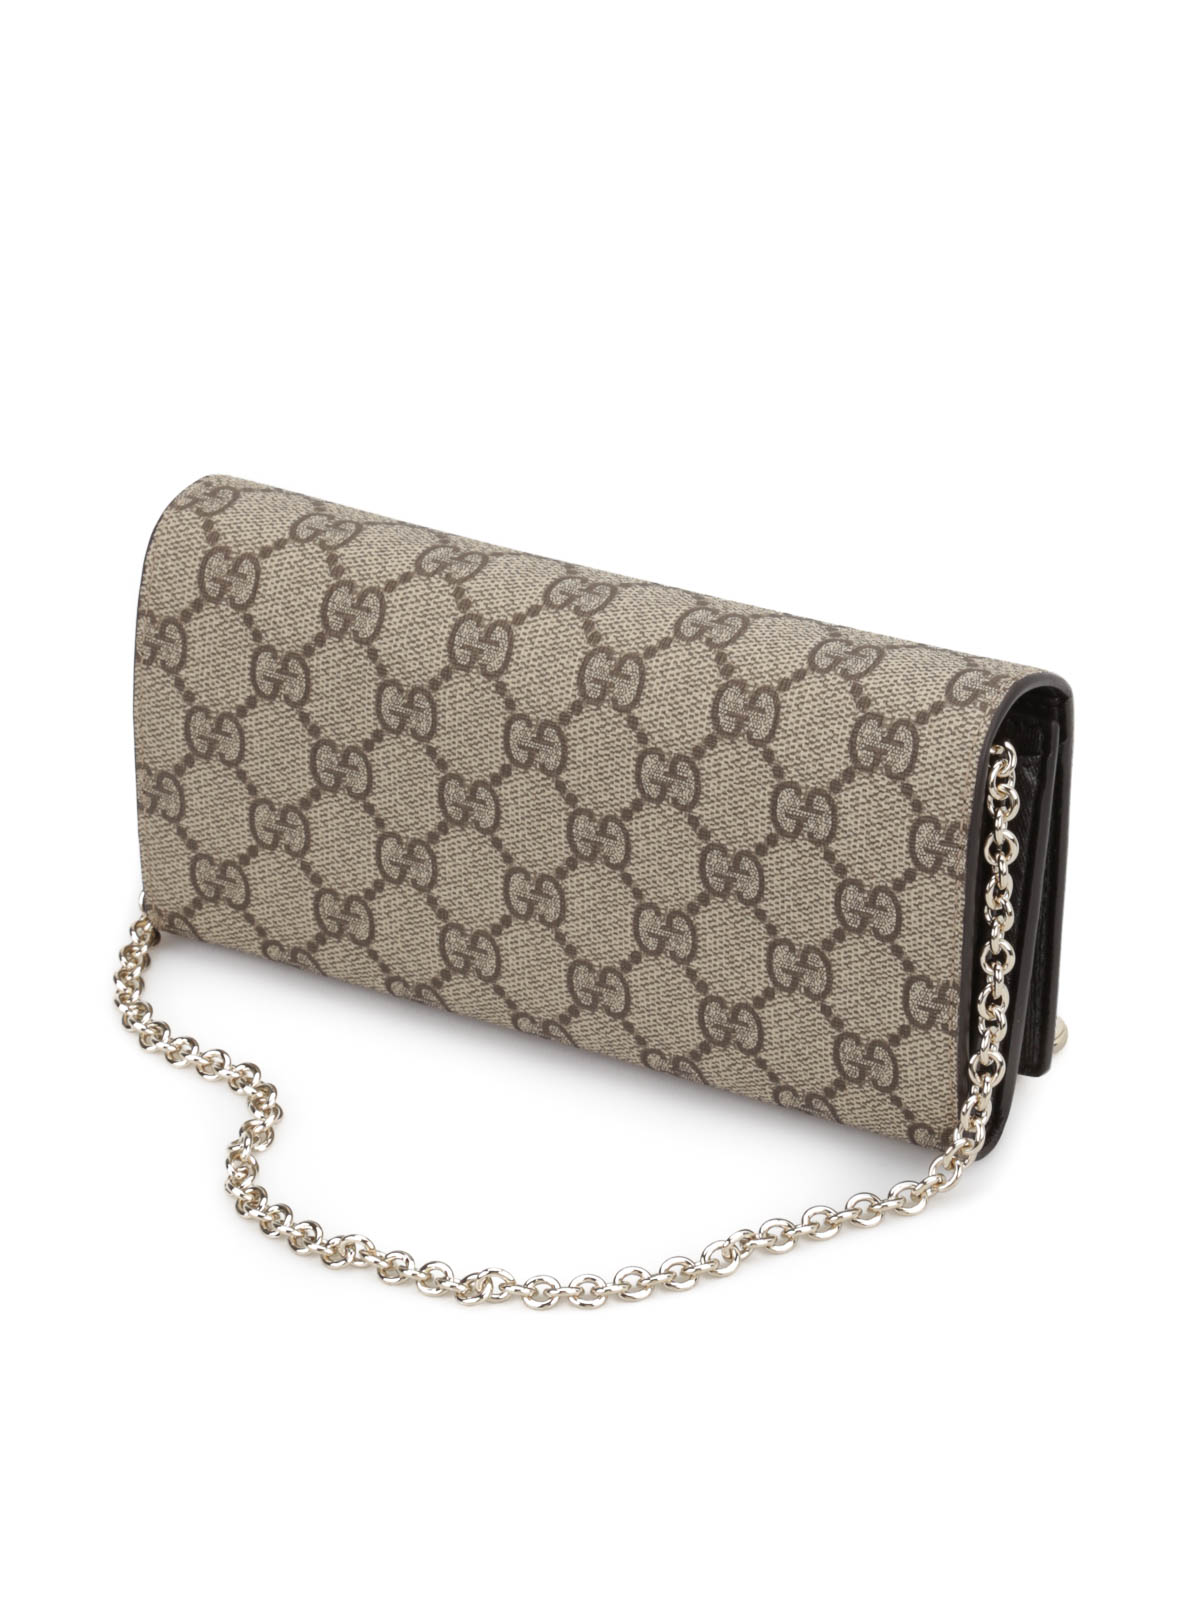 995aaf957805 Chain Wallet Gucci | Stanford Center for Opportunity Policy in Education